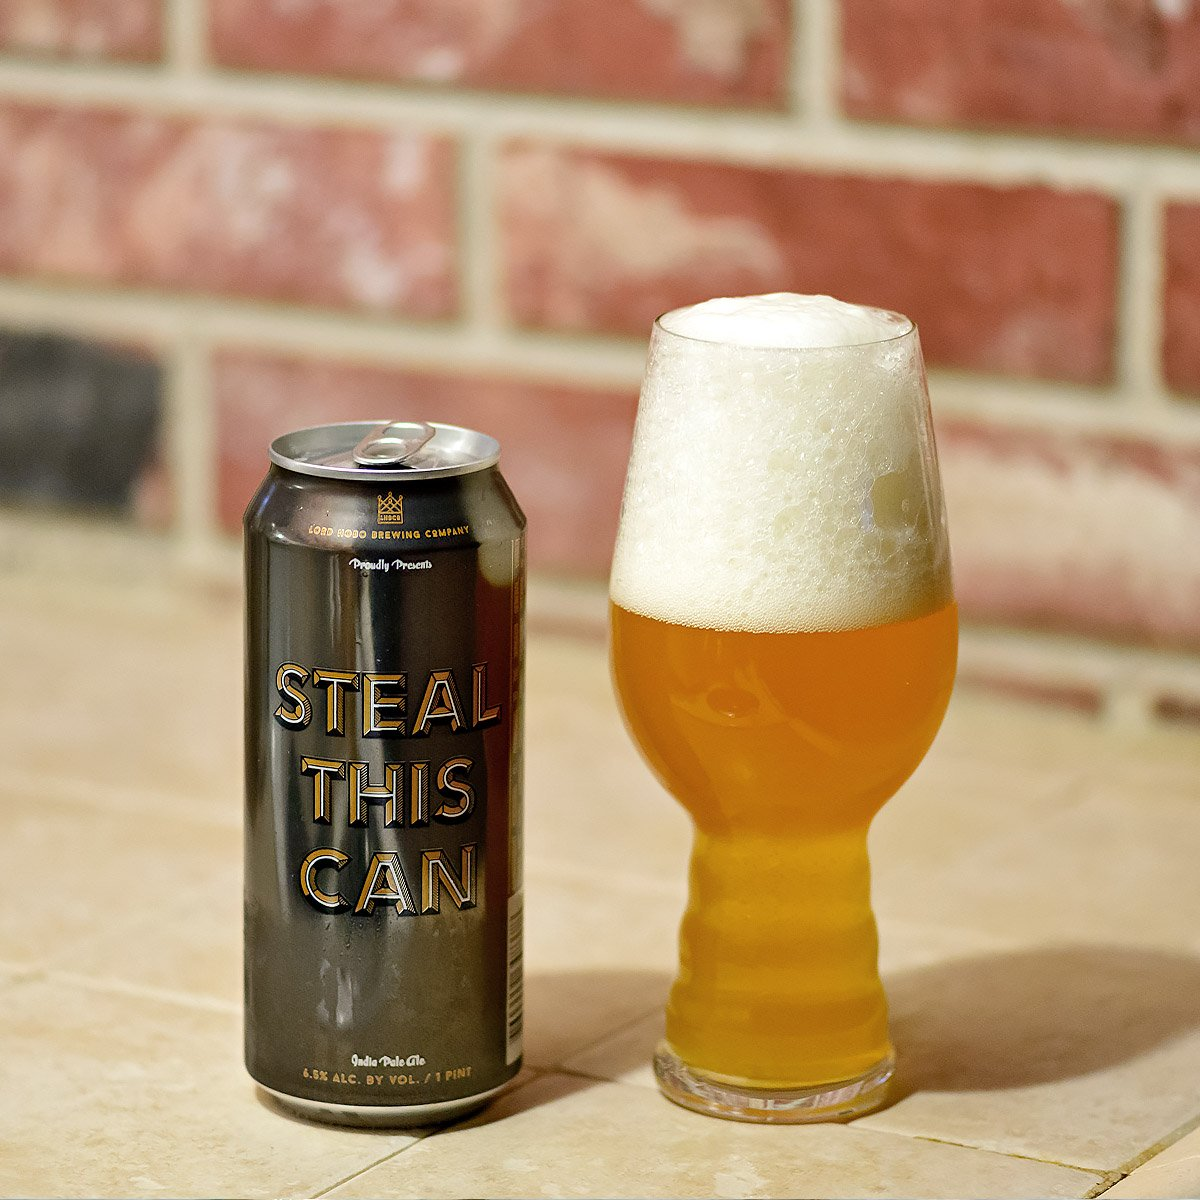 Steal This Can, an American IPA by Lord Hobo Brewing Co.